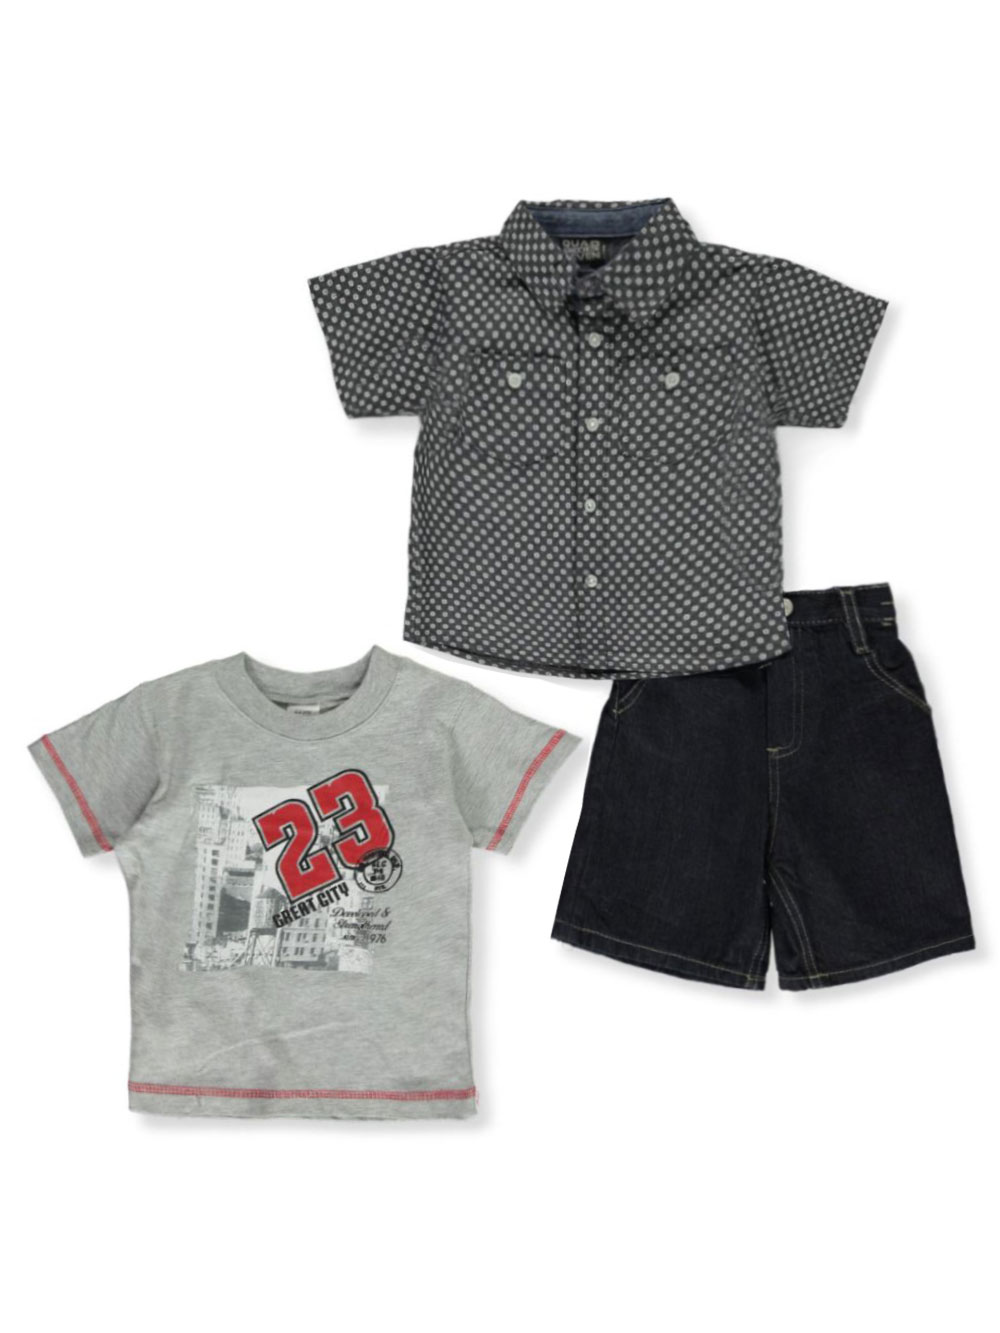 Boys Gray and Navy Sets